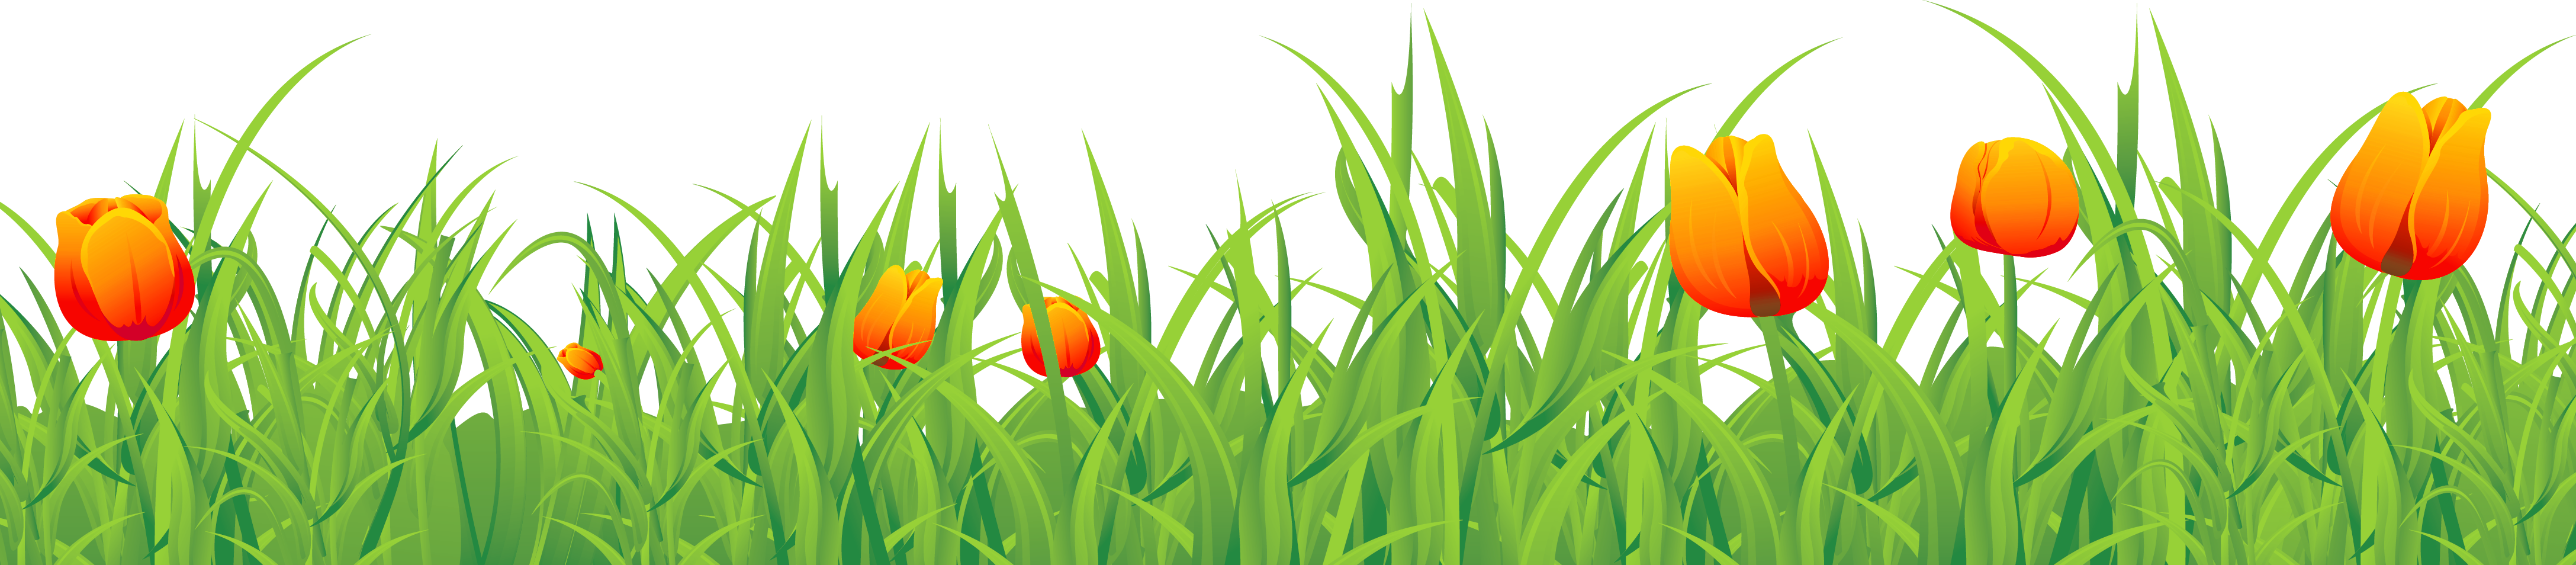 Ground with tulips png. Clipart grass tulip